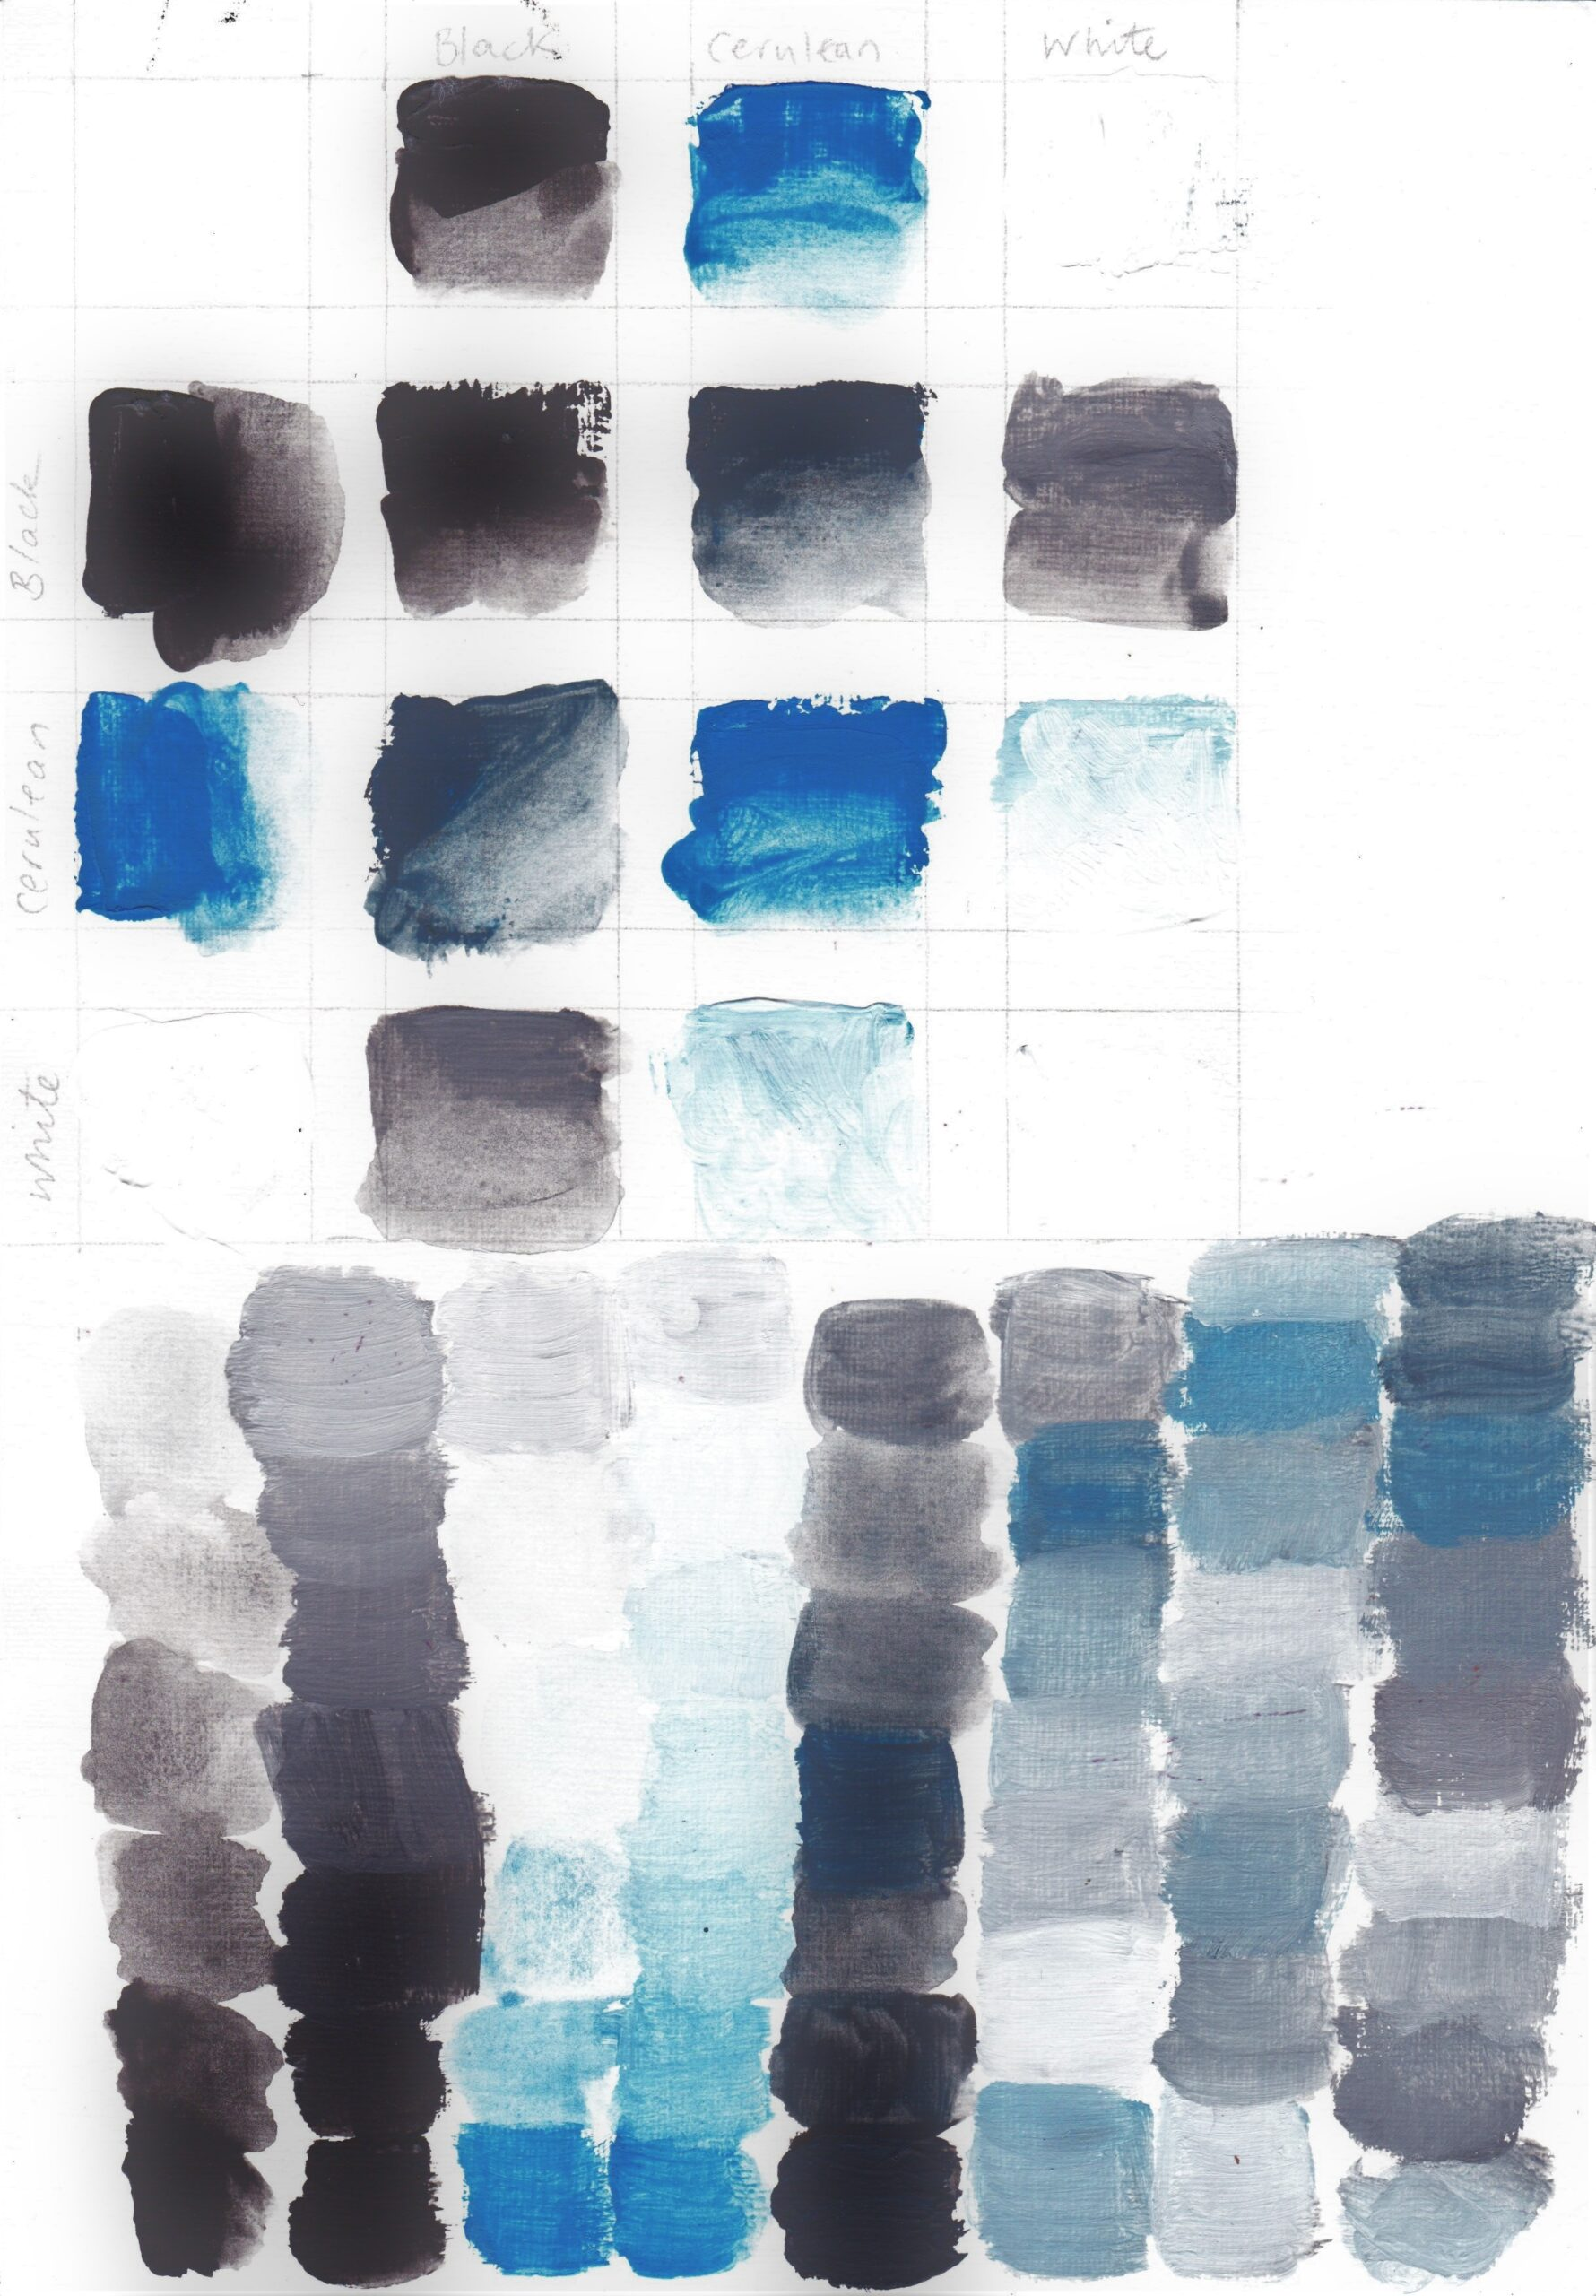 Colour mixes using Cerulean Blue, Black and White